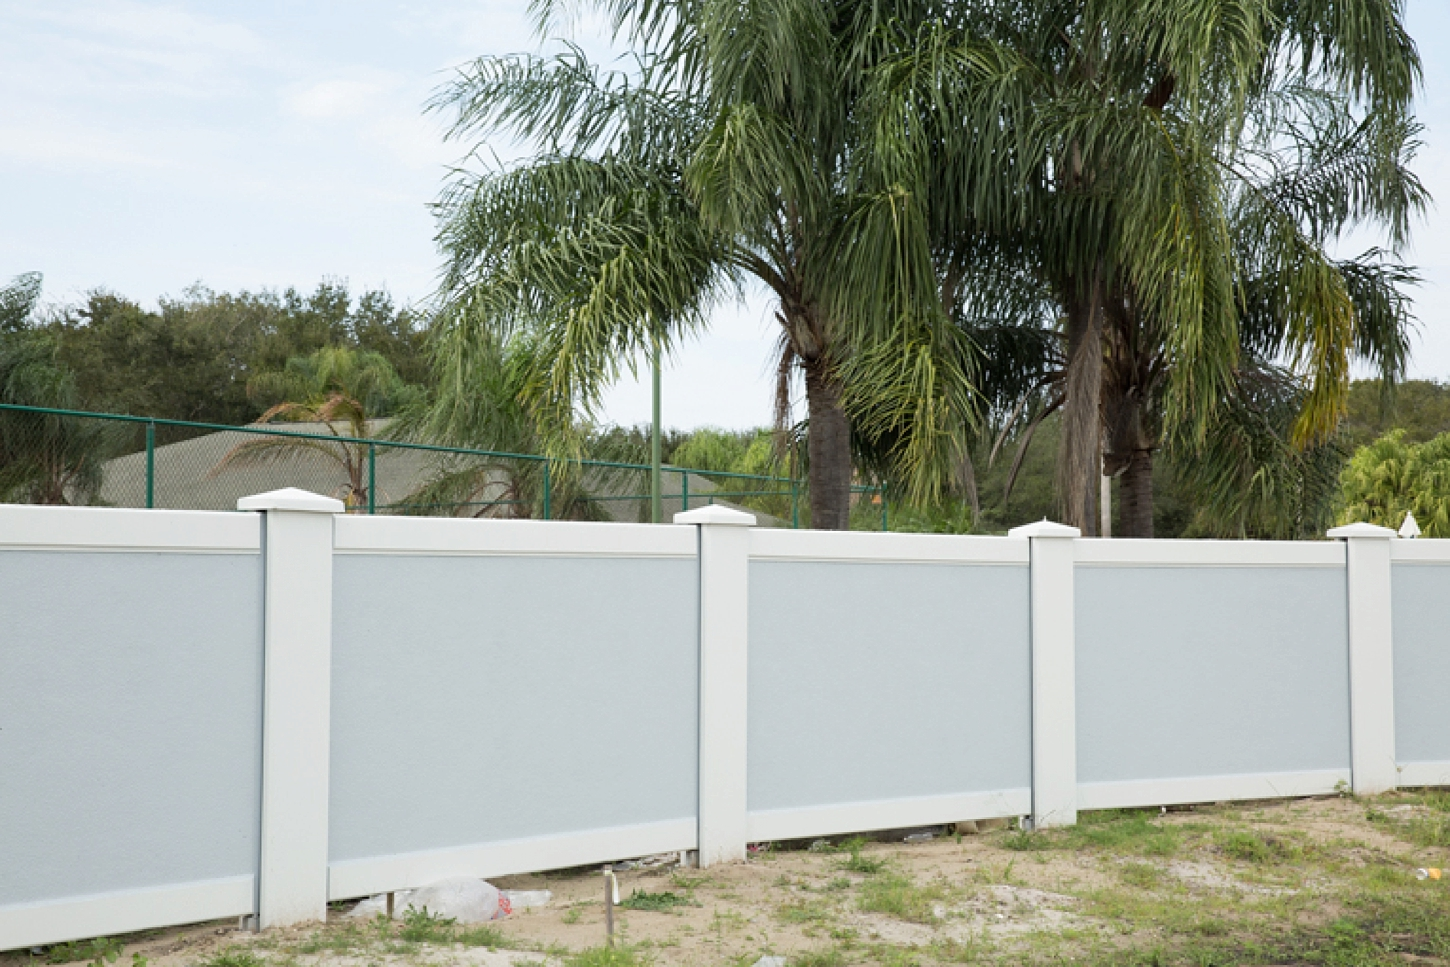 Cement Fence Designs Concrete fence designs installation 7 things you should know concrete fence designs workwithnaturefo